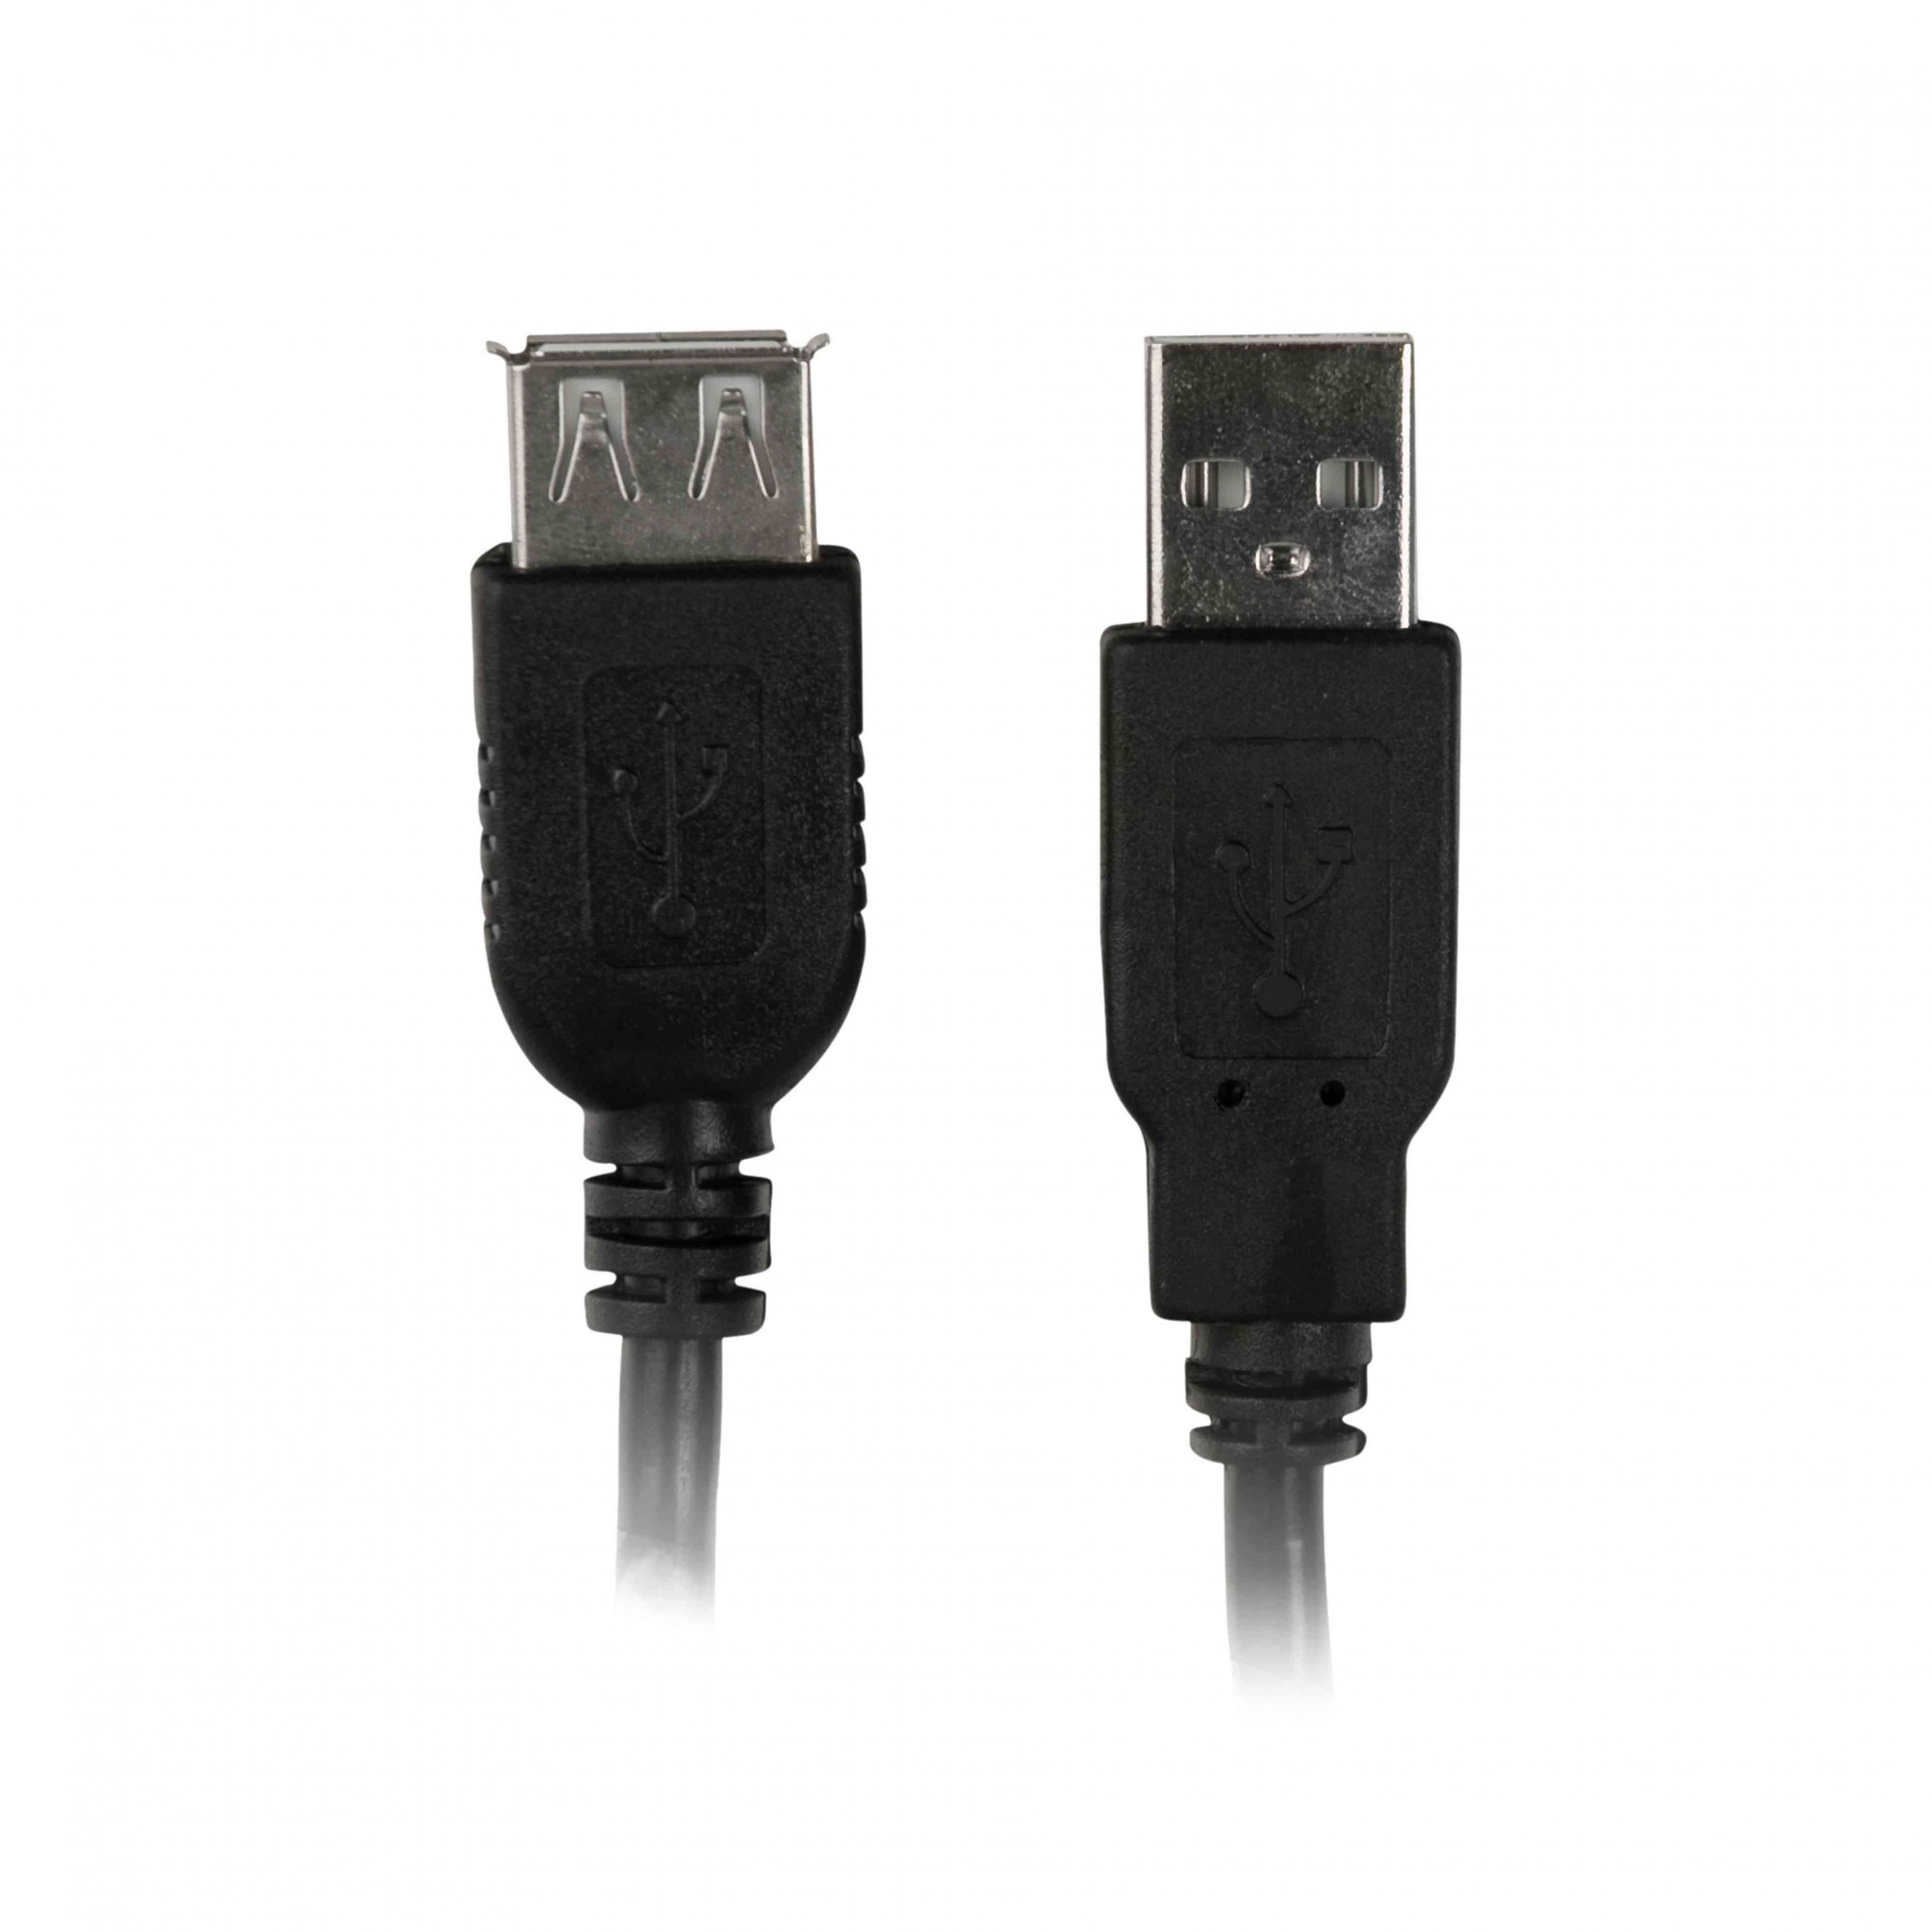 Cabo Extensor para USB 2.0 AM X AF 1.8M PC-USB1802 Pluscable